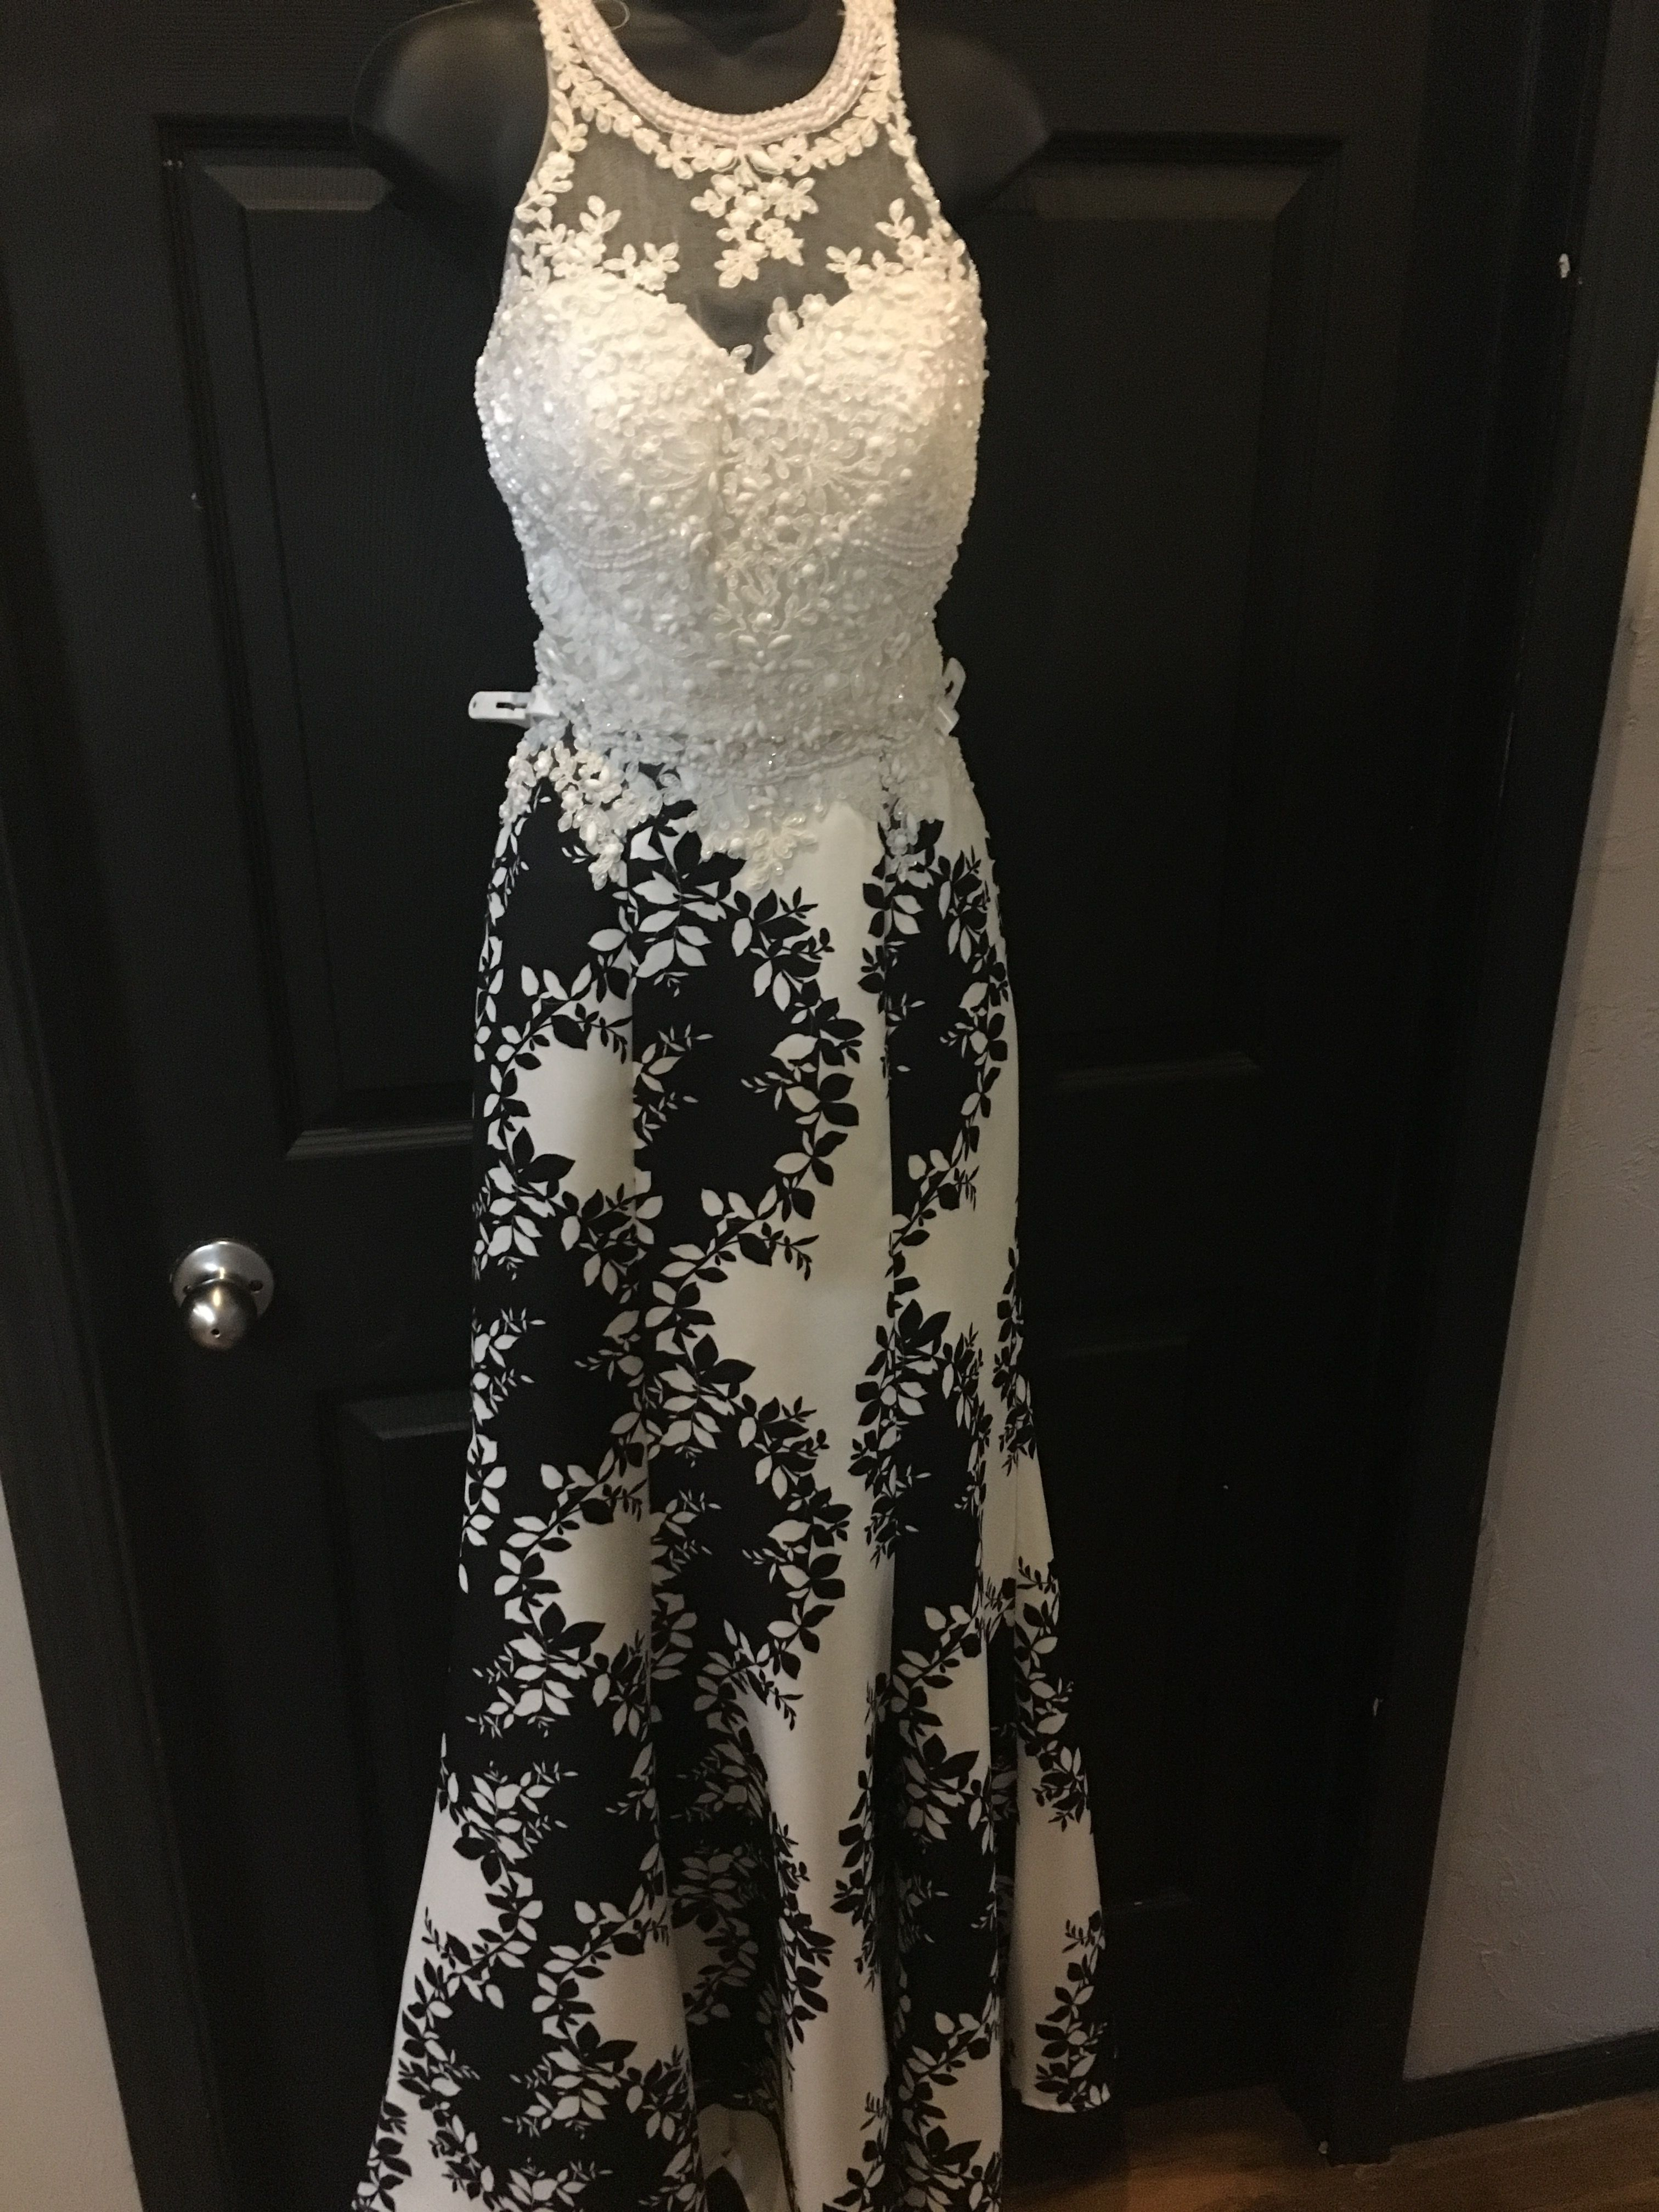 Beautiful 2 Piece Prom Dress White Lace Top And A White Skirt With Black Floral Pattern Bottom Piece Prom Dress Prom Dresses 2 Piece Prom Dress [ 4032 x 3024 Pixel ]